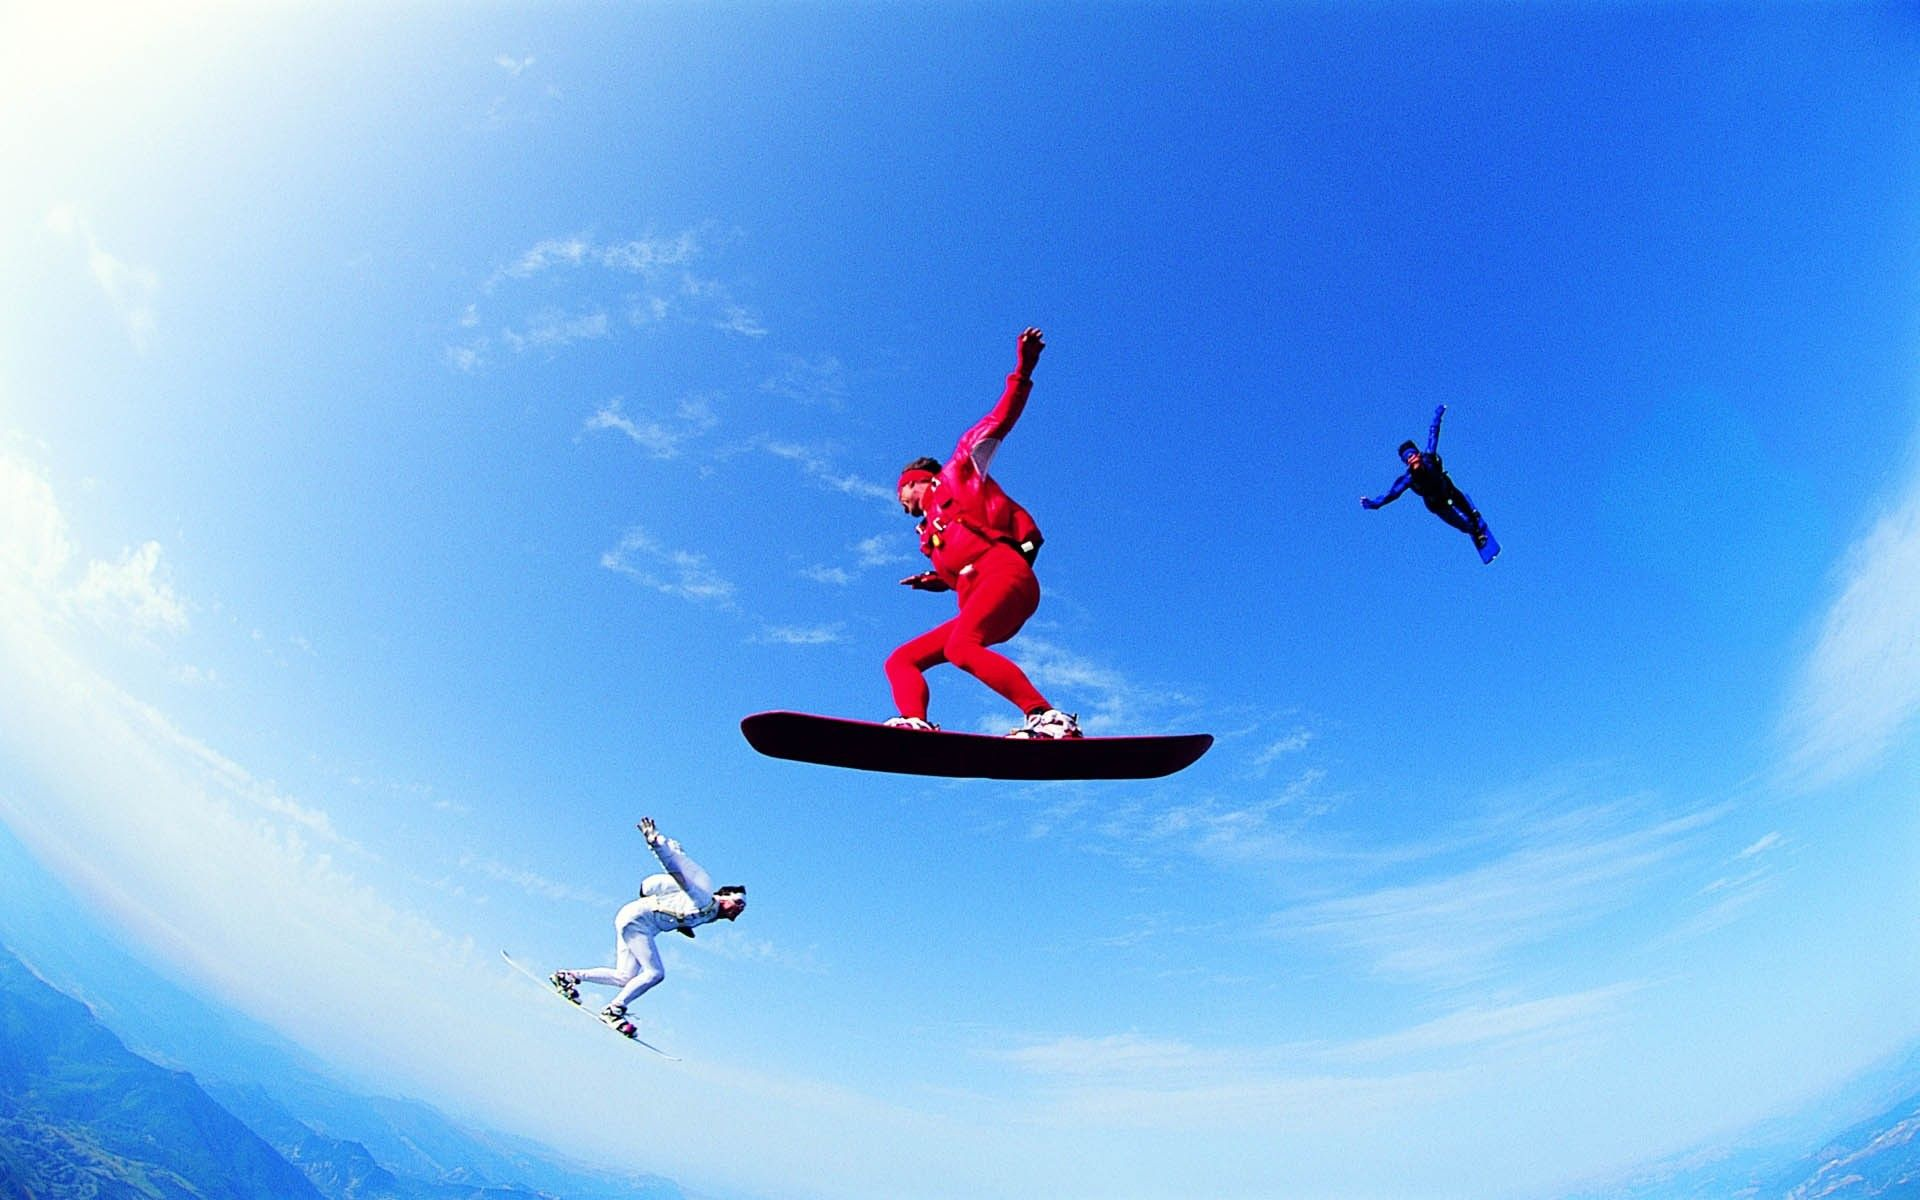 Skydiving Skyscapes 1920x1200 Hd Wallpaper Collection Sports Sky